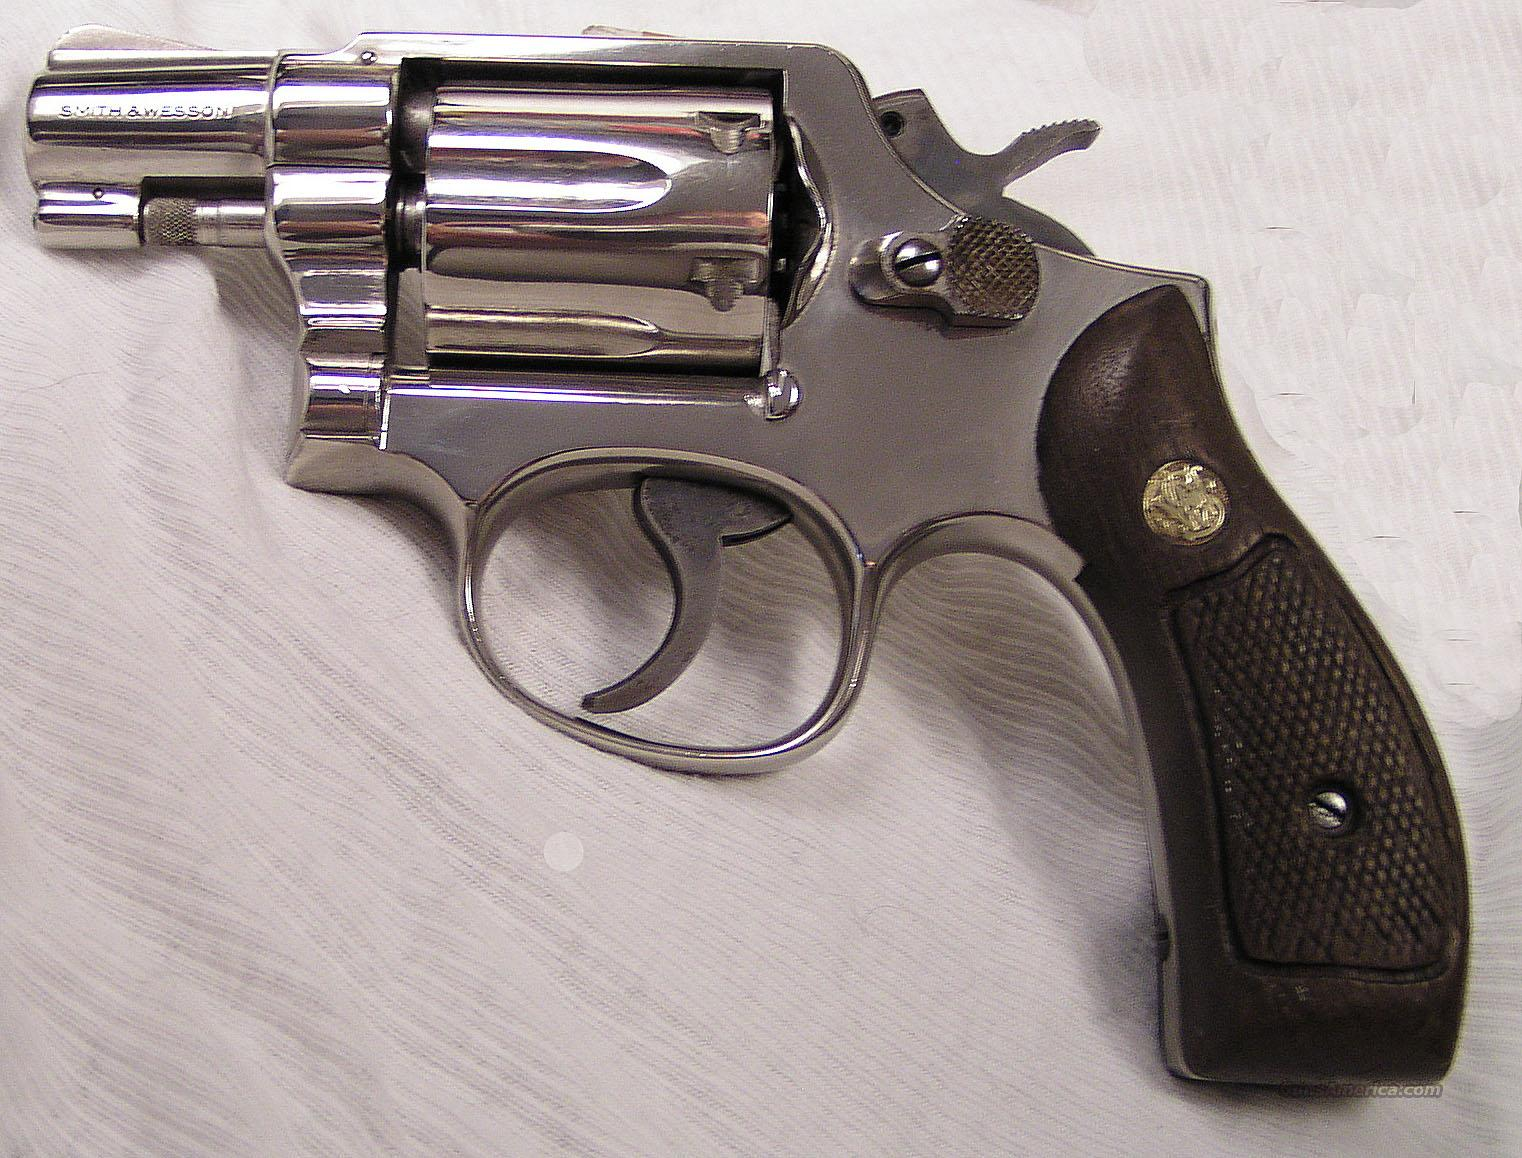 S&W MODEL 10-5 NICKEL SNUB-NOSED  REVOLVER  Guns > Pistols > Smith & Wesson Revolvers > Full Frame Revolver